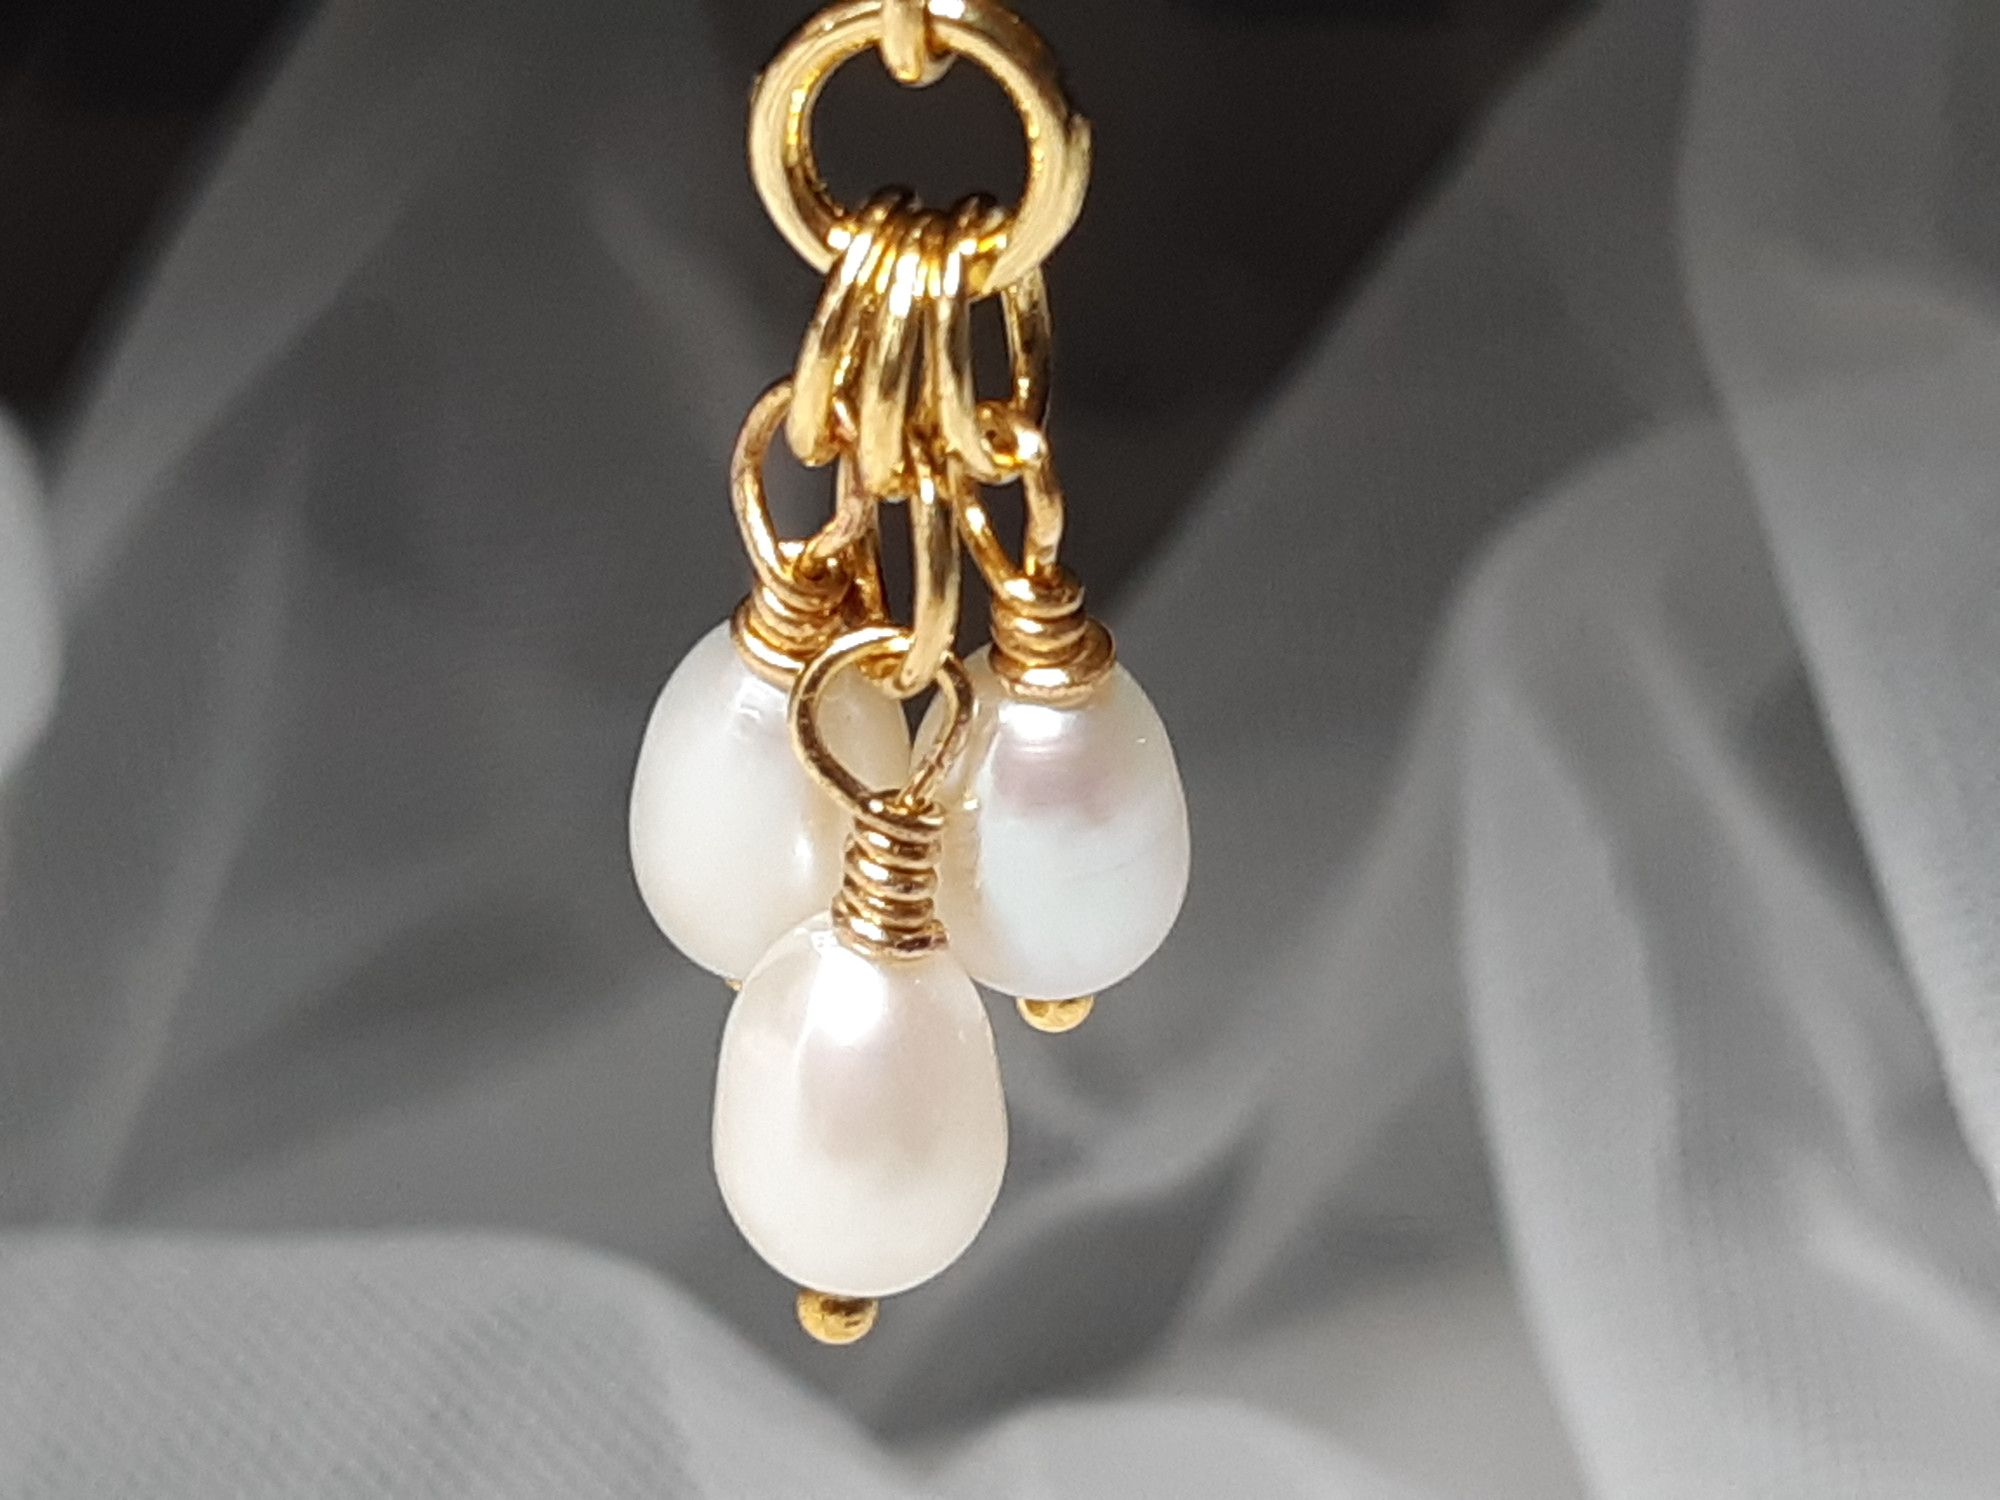 Occasion-bridal-fresh water pearl-earrings with gold filled hoops-3.jpg